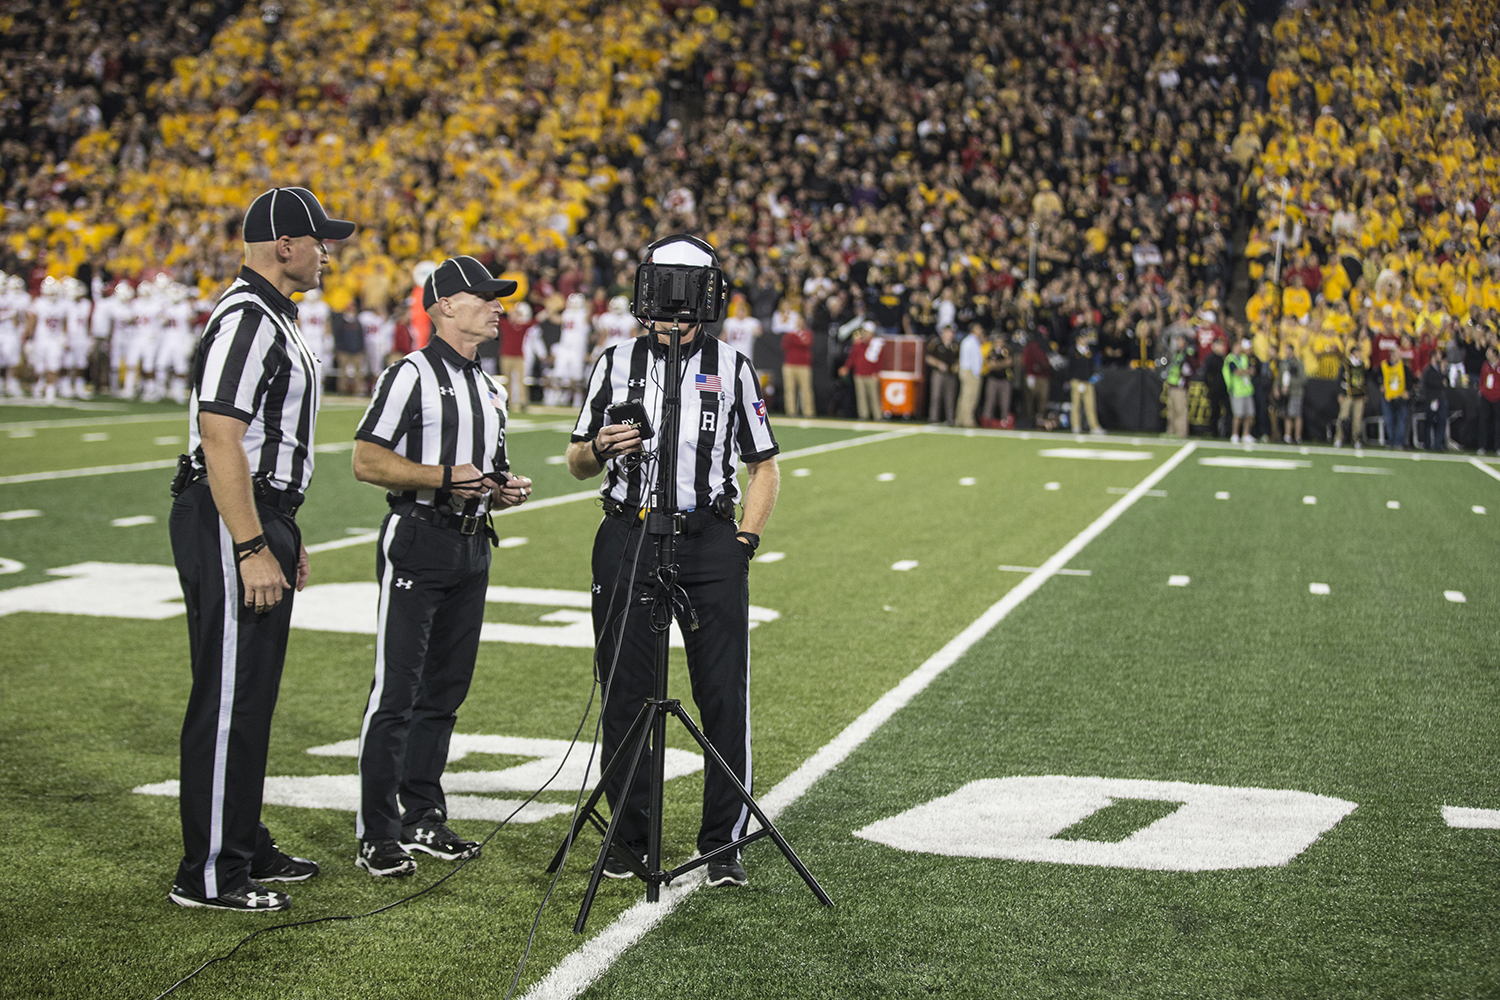 Referees+perform+a+video+review+after+Iowa+punt+returner+Kyle+Groenwing+fumbled+during+a+return+during+a+football+game+between+Iowa+and+Wisconsin+on+Saturday%2C+September+22%2C+2018.+The+Badgers+defeated+the+Hawkeyes%2C+28-17.+%28Shivansh+Ahuja%2FThe+Daily+Iowan%29